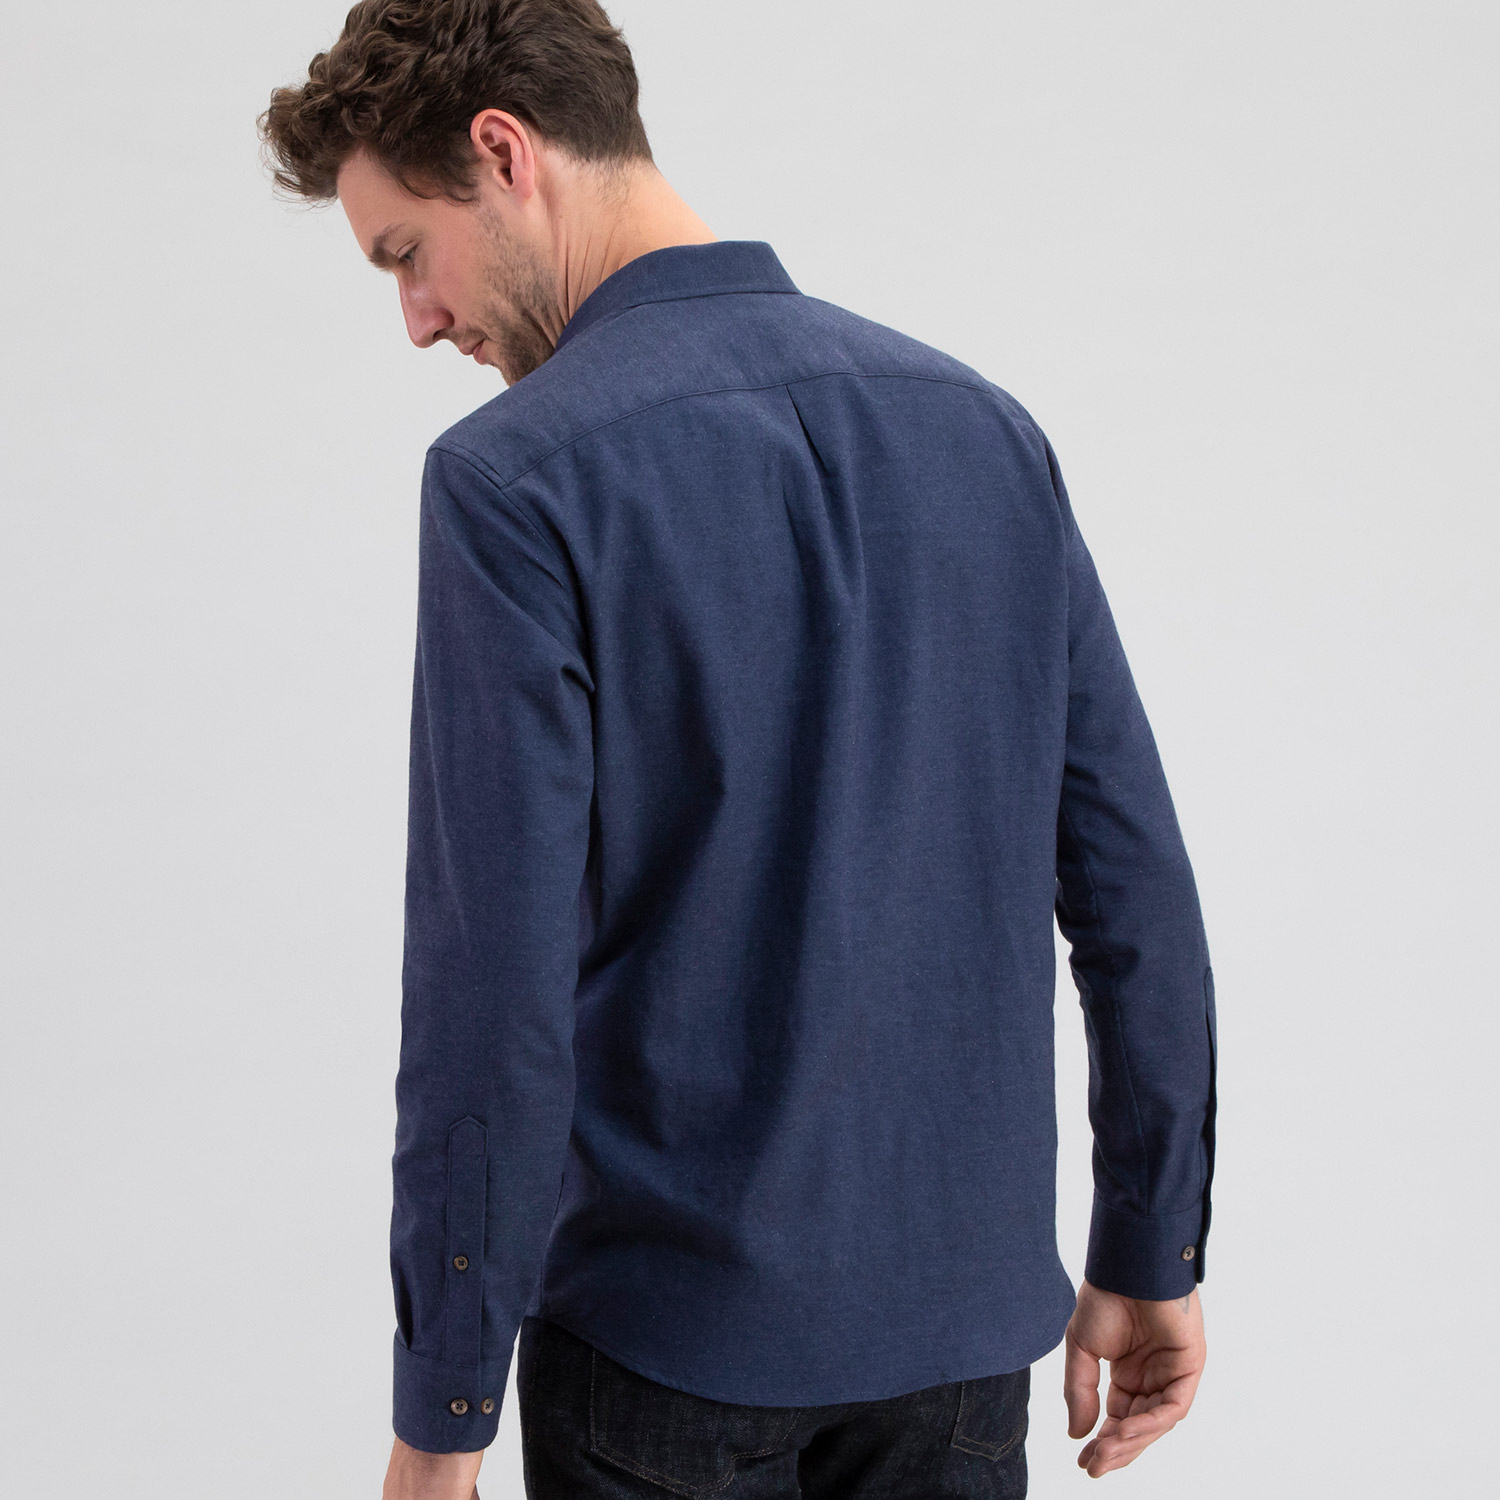 Cotton Cashmere Heather Navy